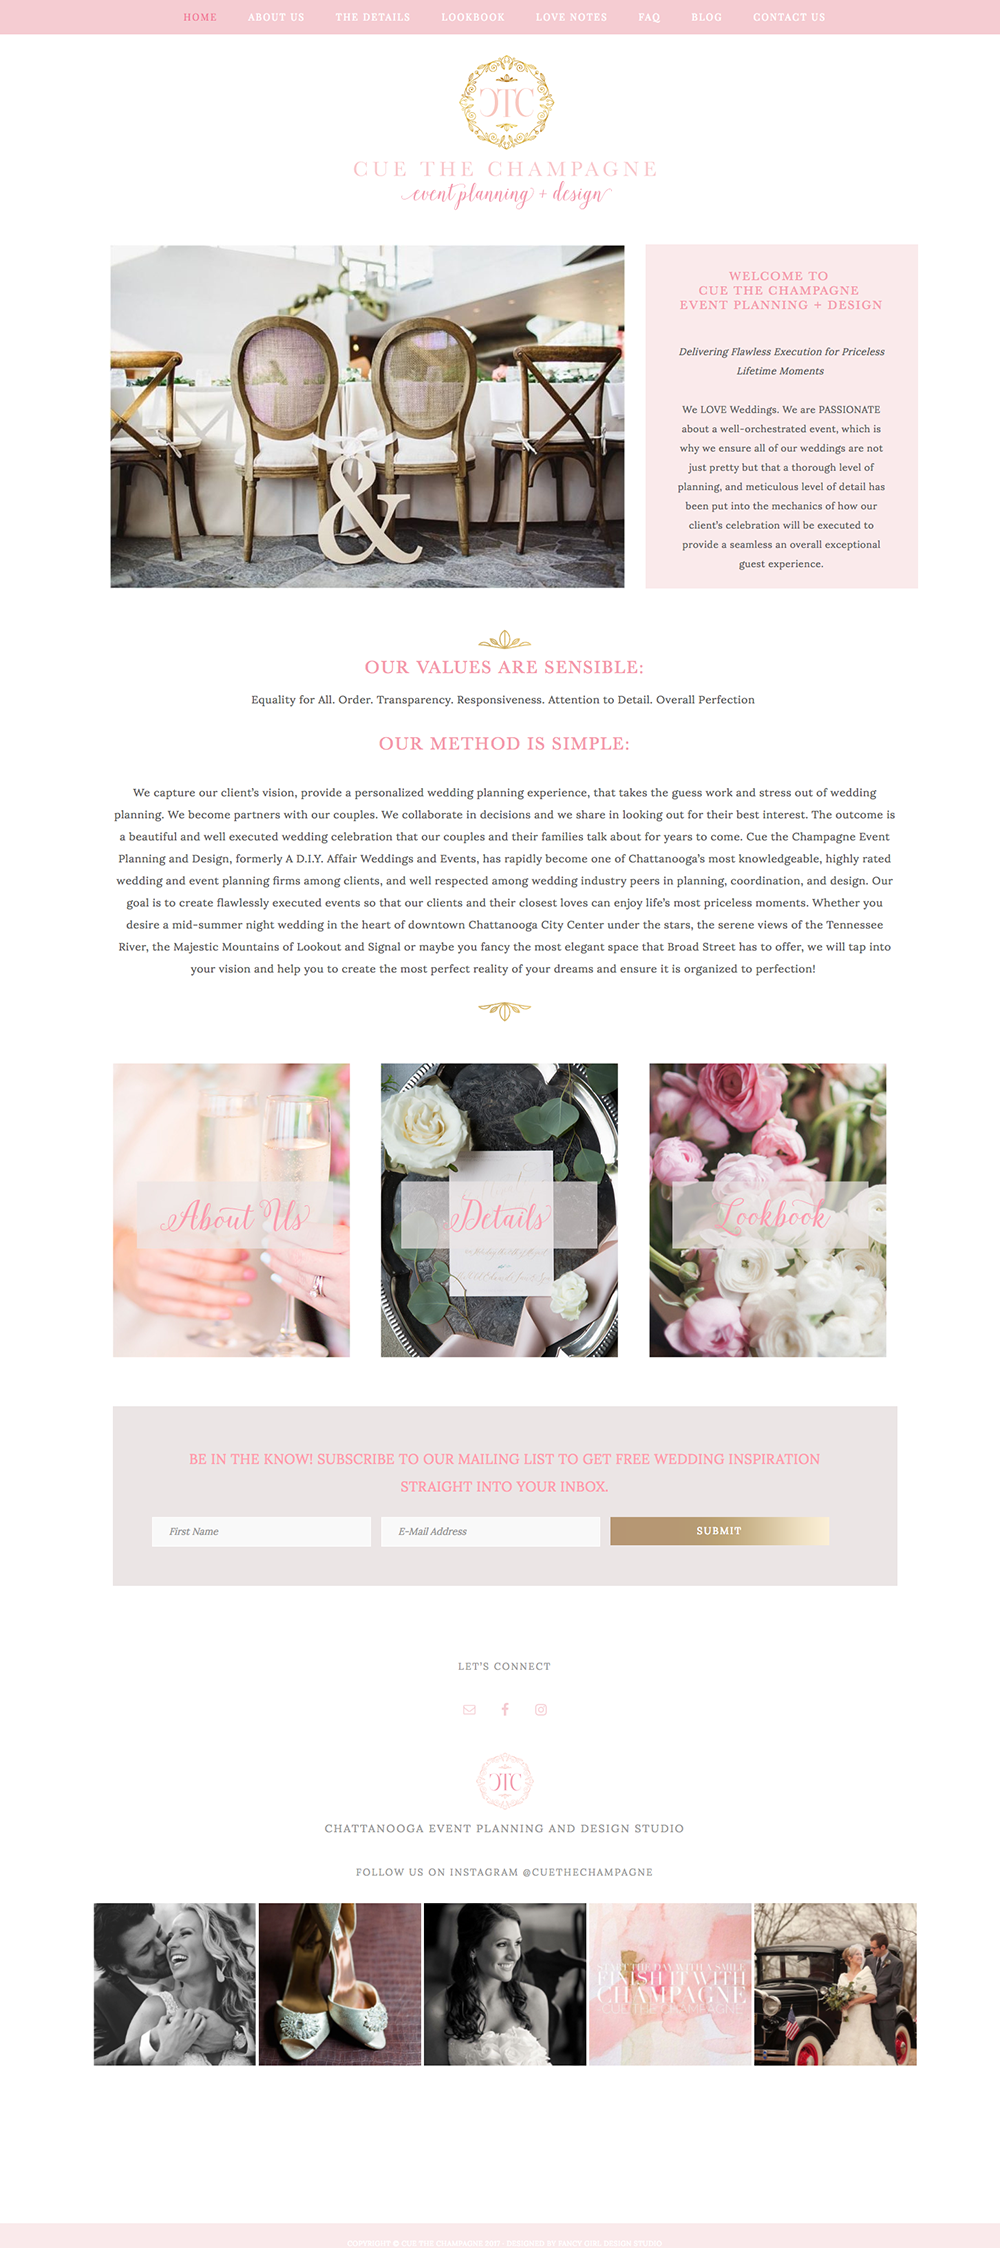 Cue the Champagne Website Homepage by Fancy Girl Design Studio